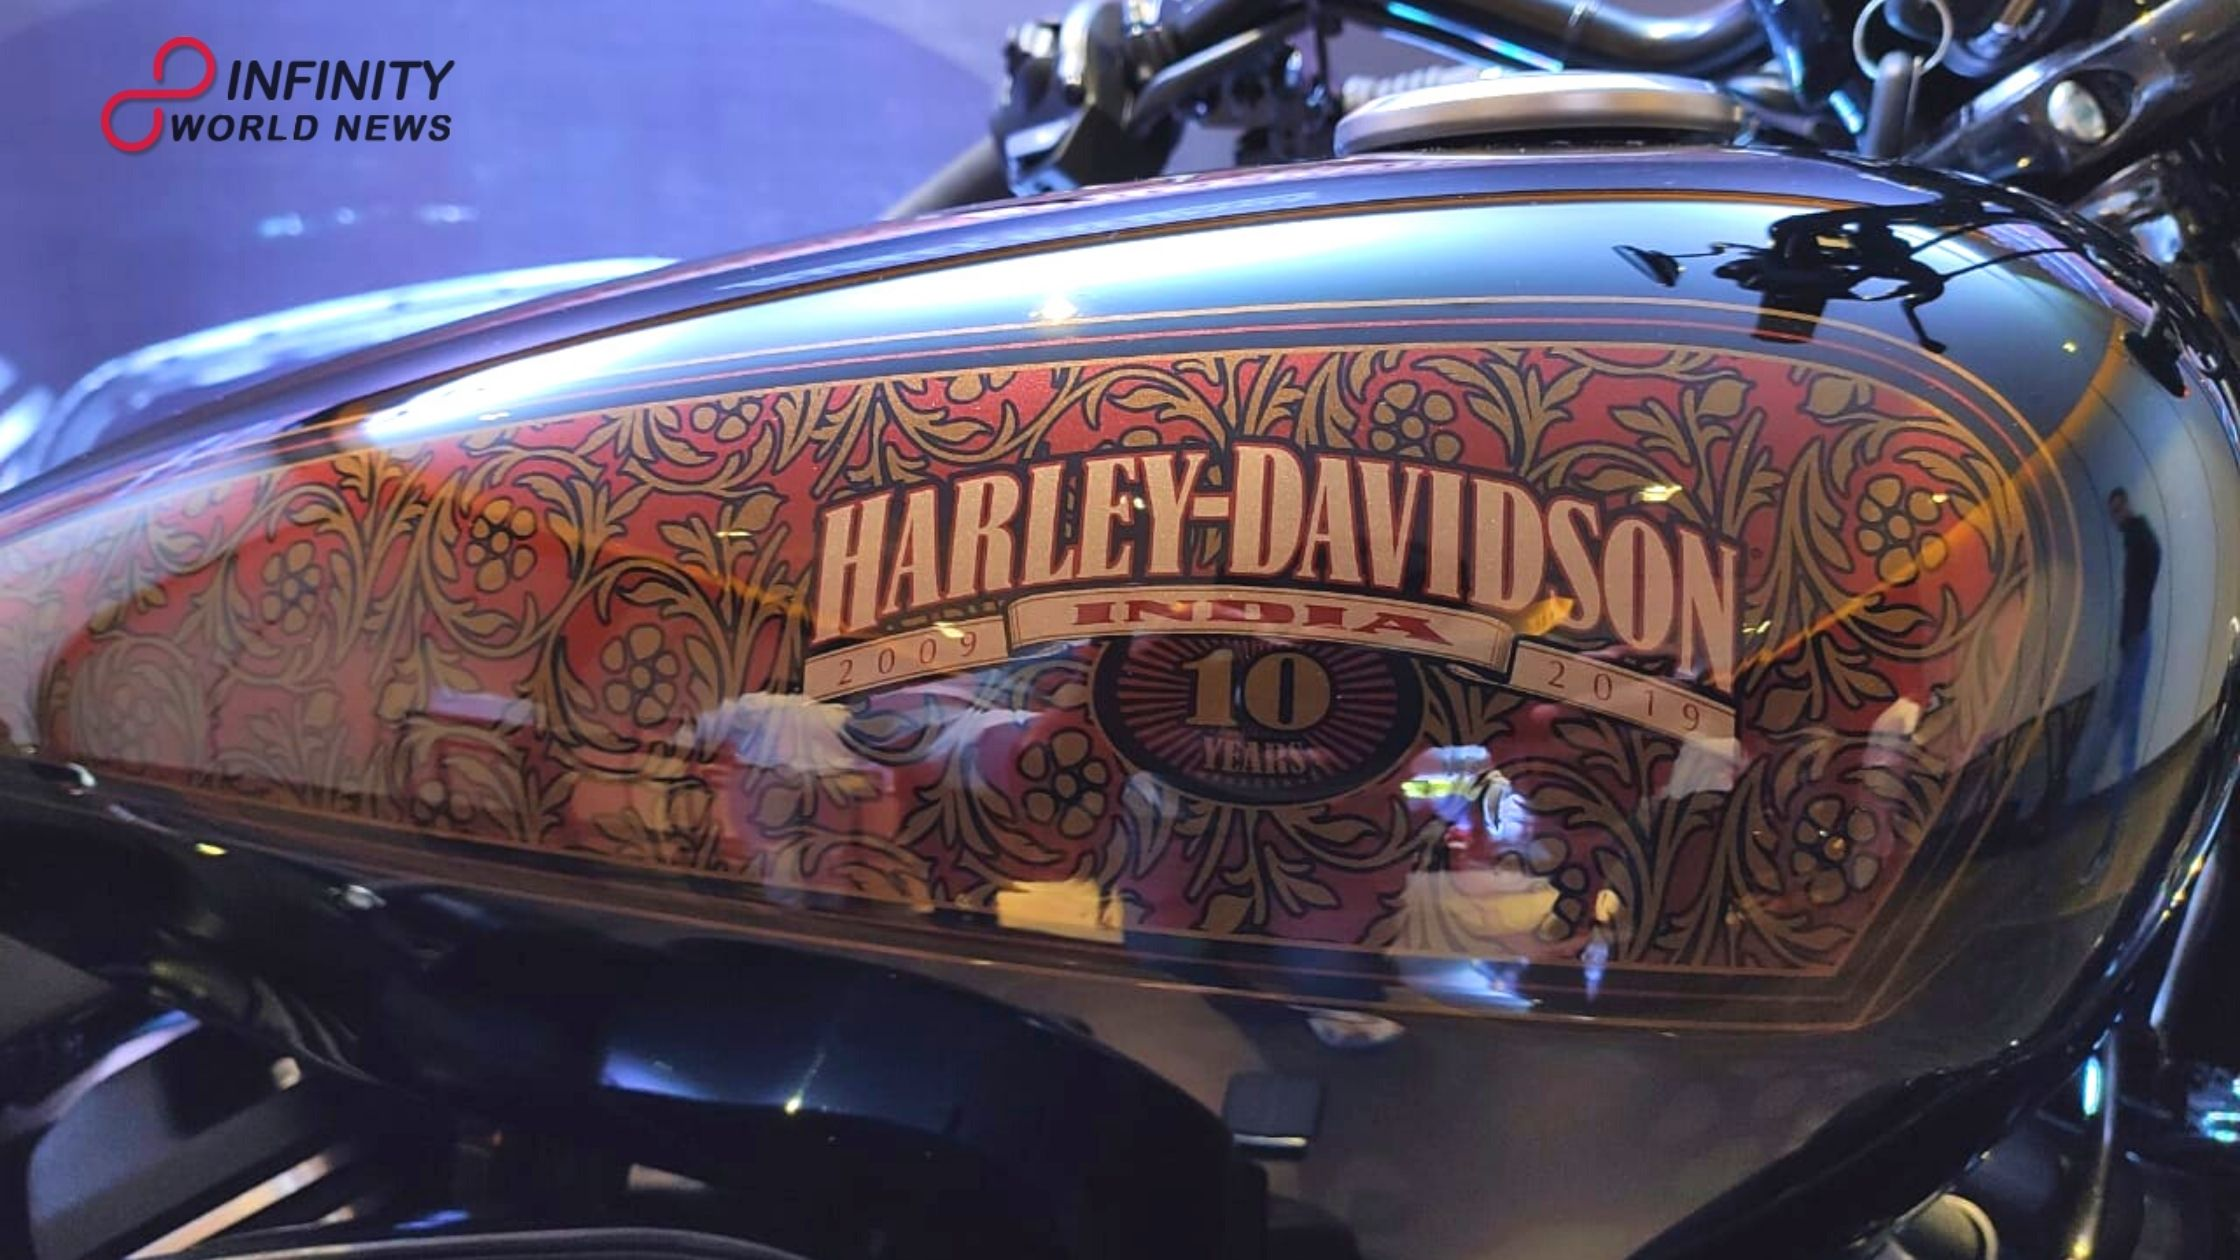 This week in Auto_ Is this the stopping point for Harley Davidson in India_